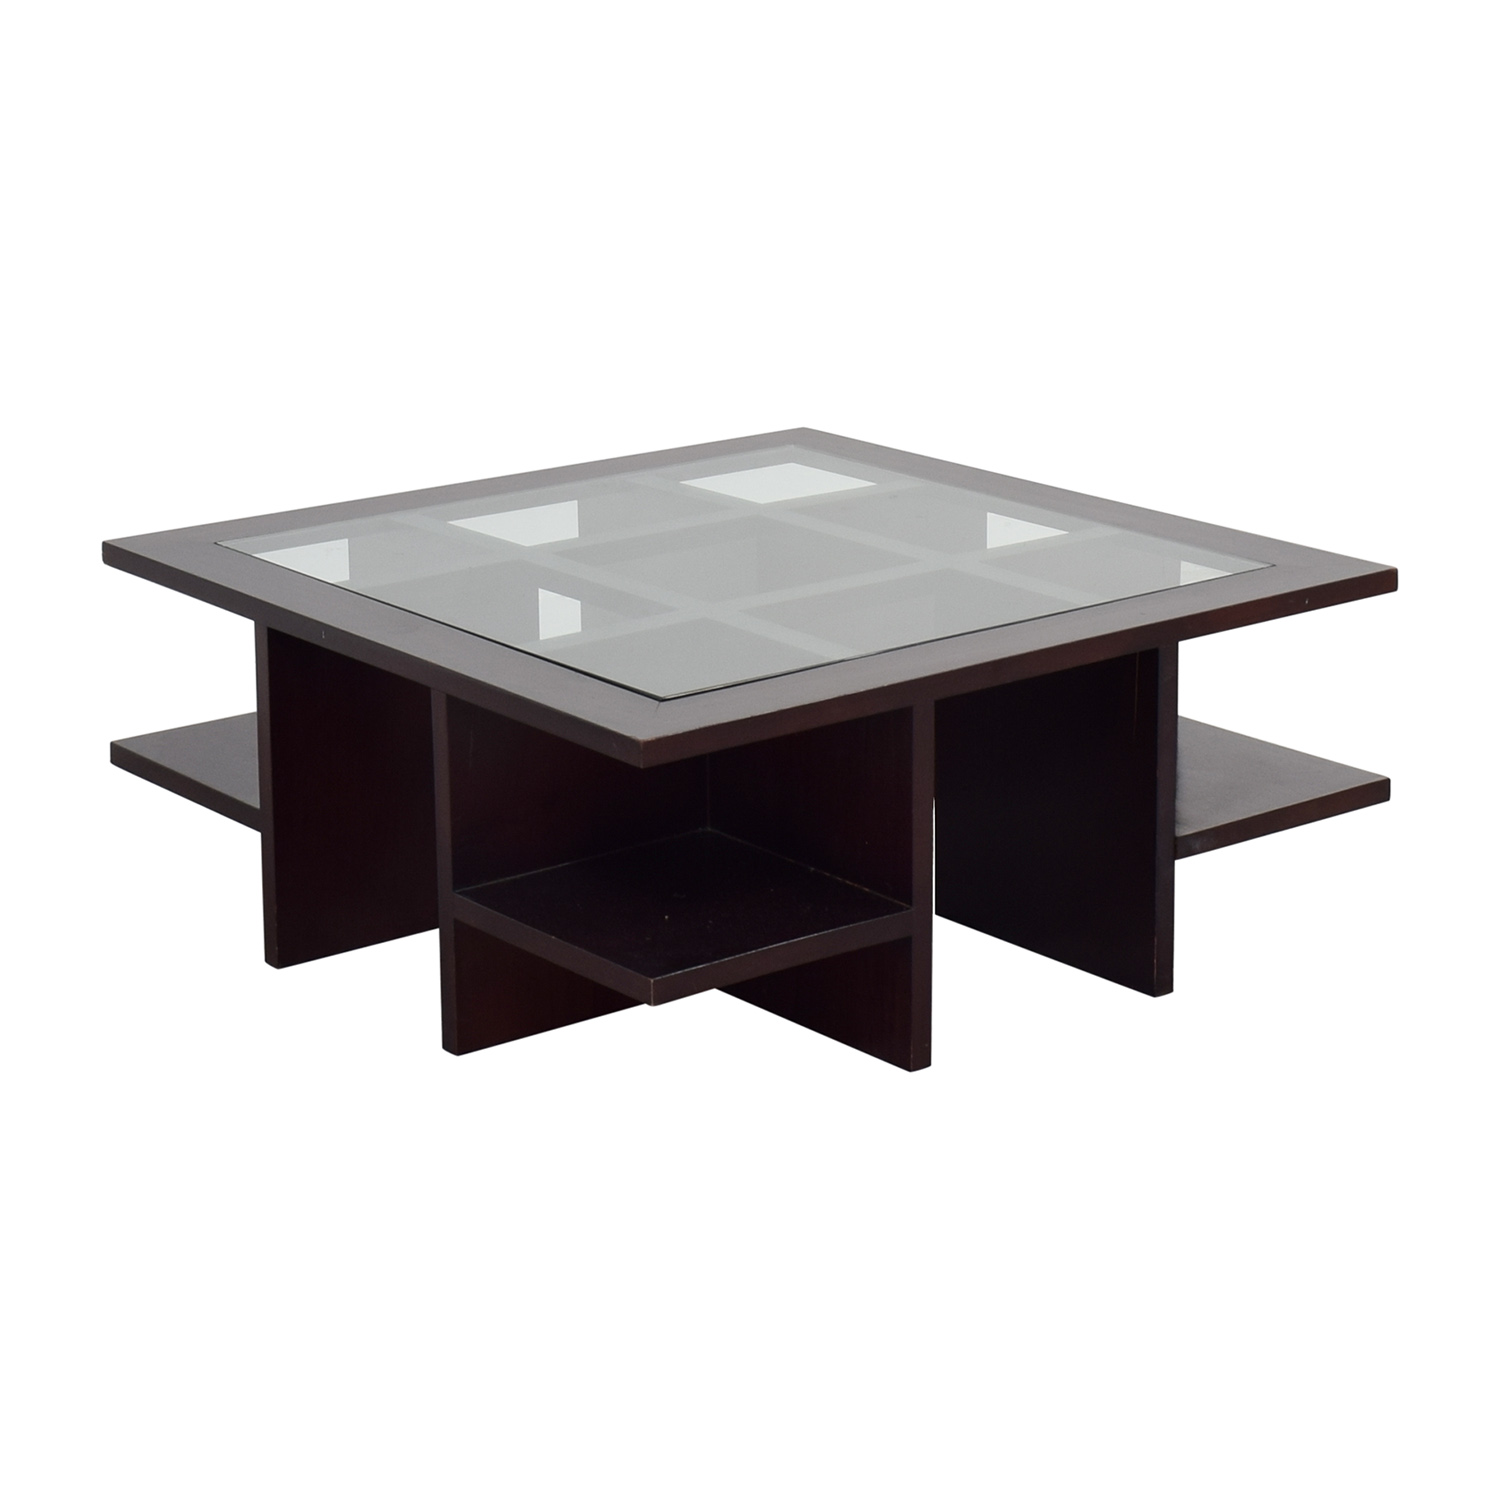 Moie Moie Wood and Glass Coffee Table with Side Shelves Tables